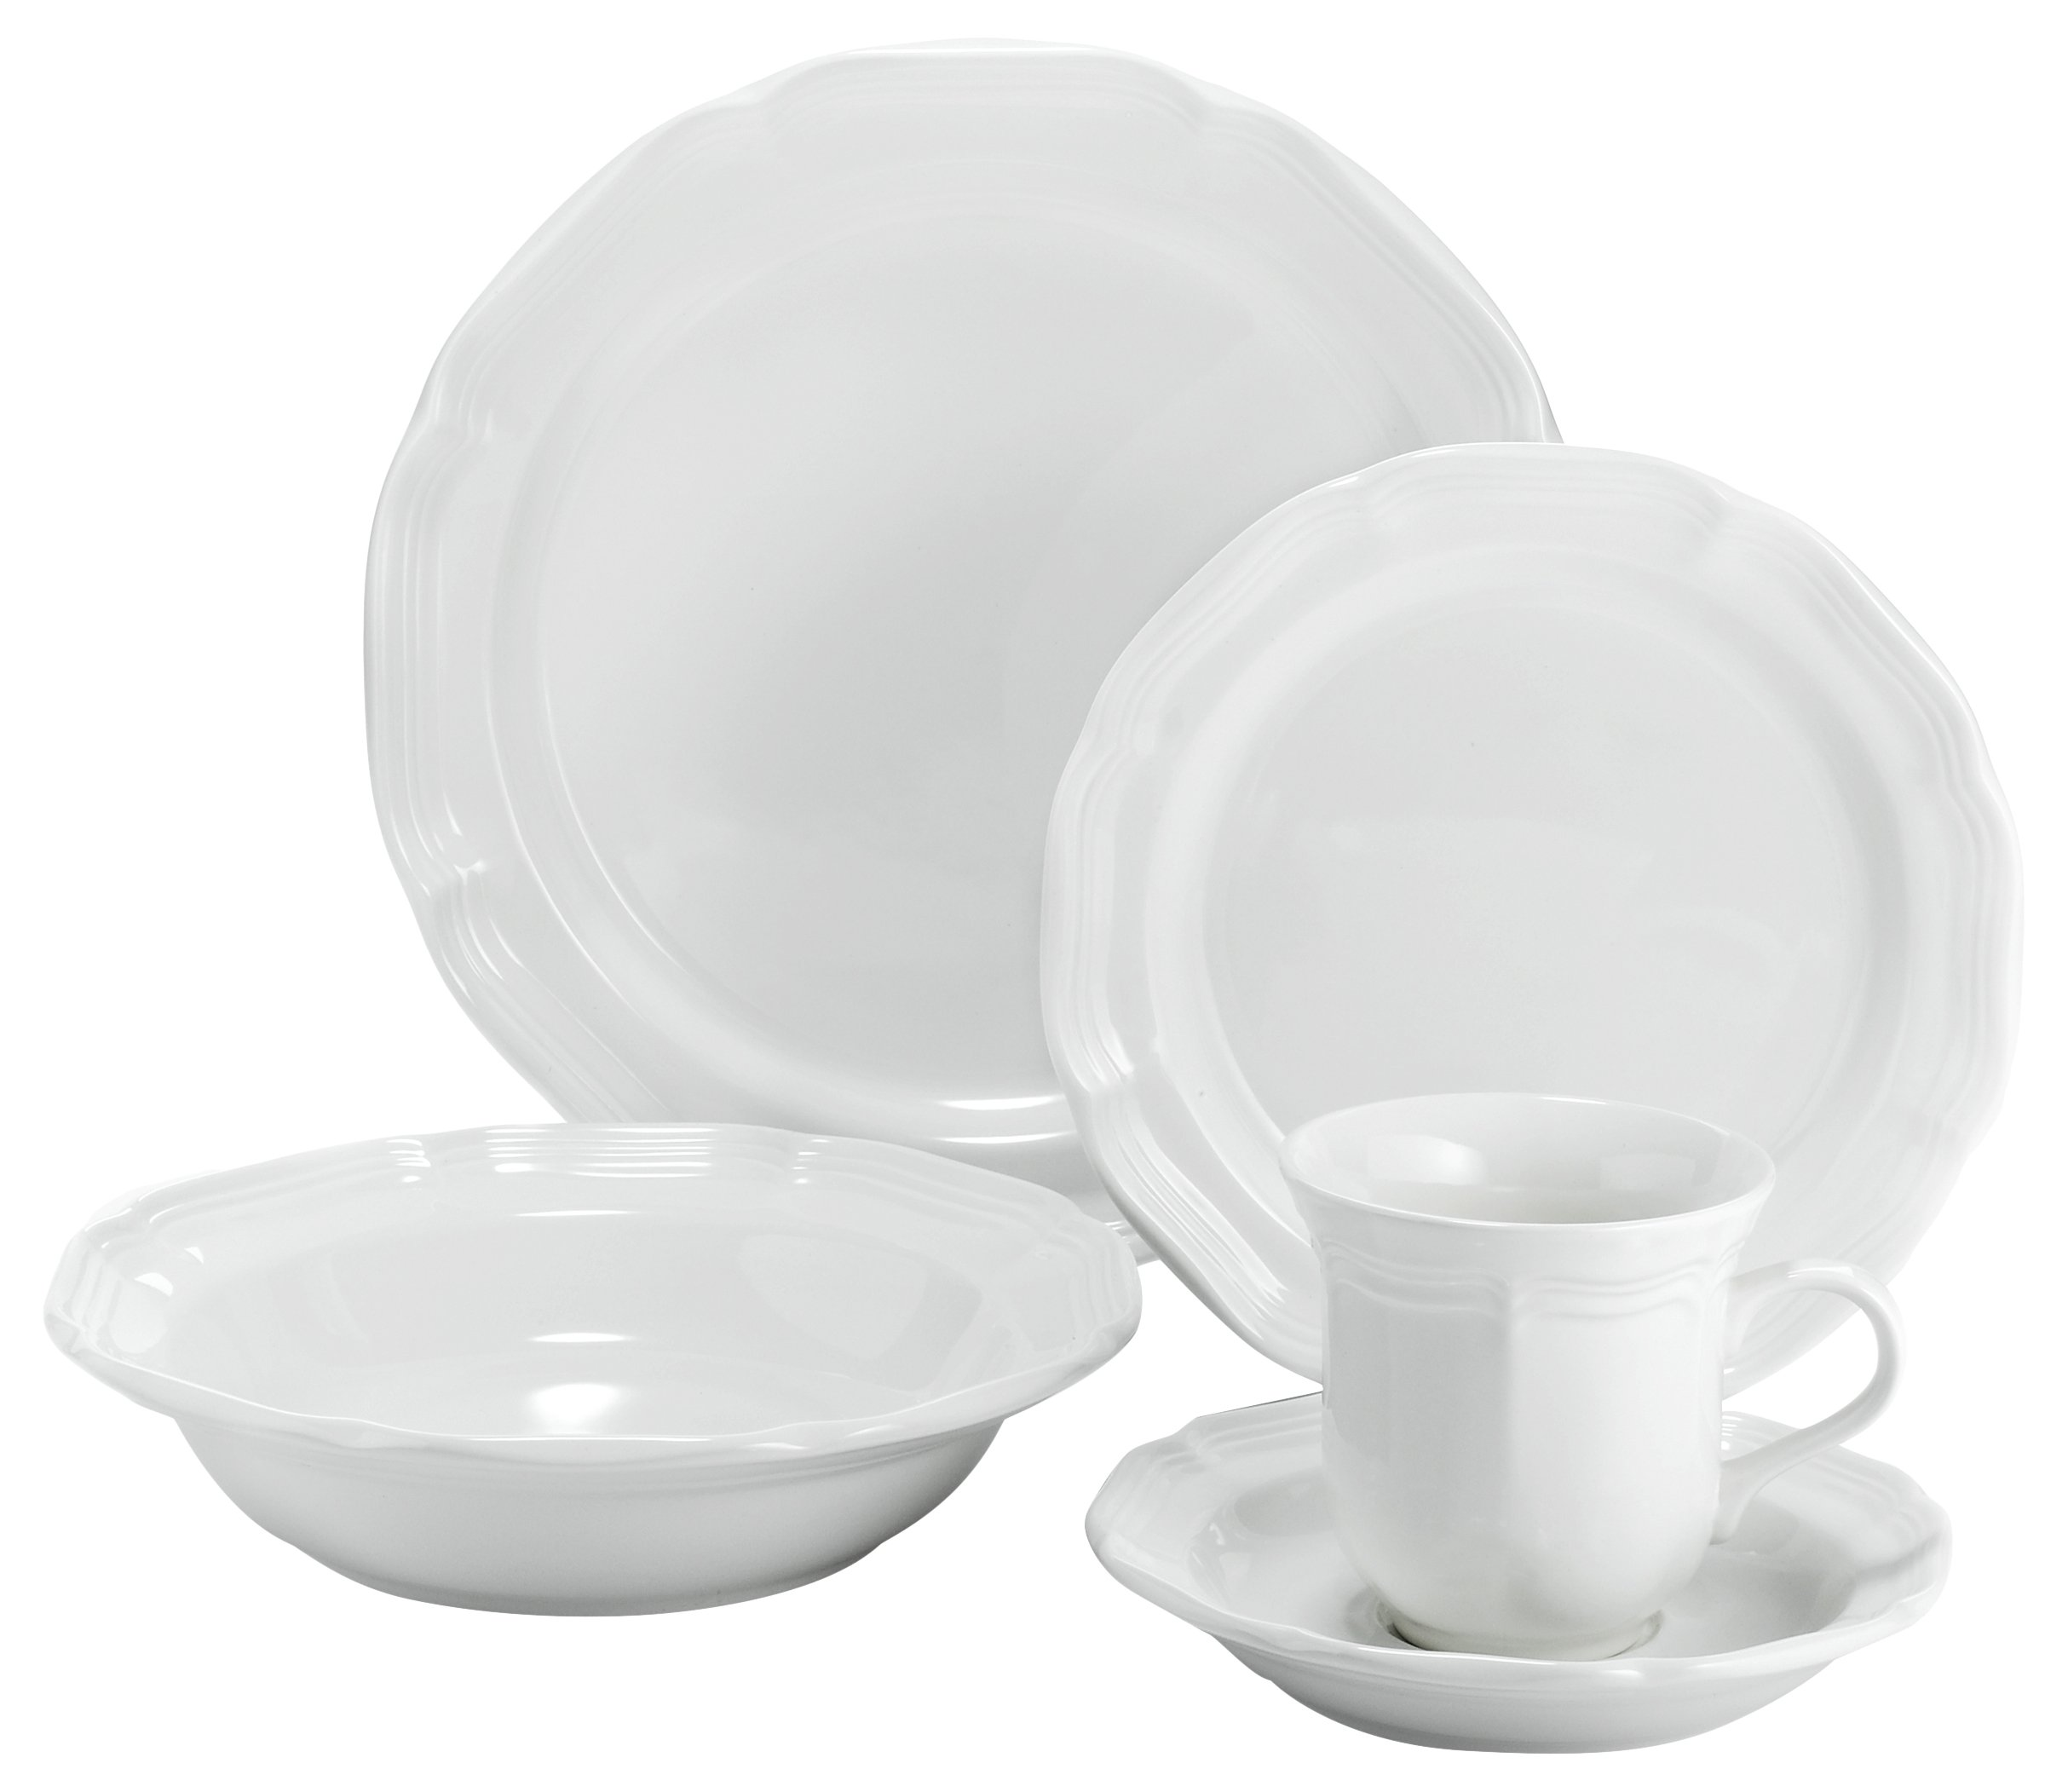 Mikasa 5223388 16 Piece French Countryside Dinnerware Set, Cream